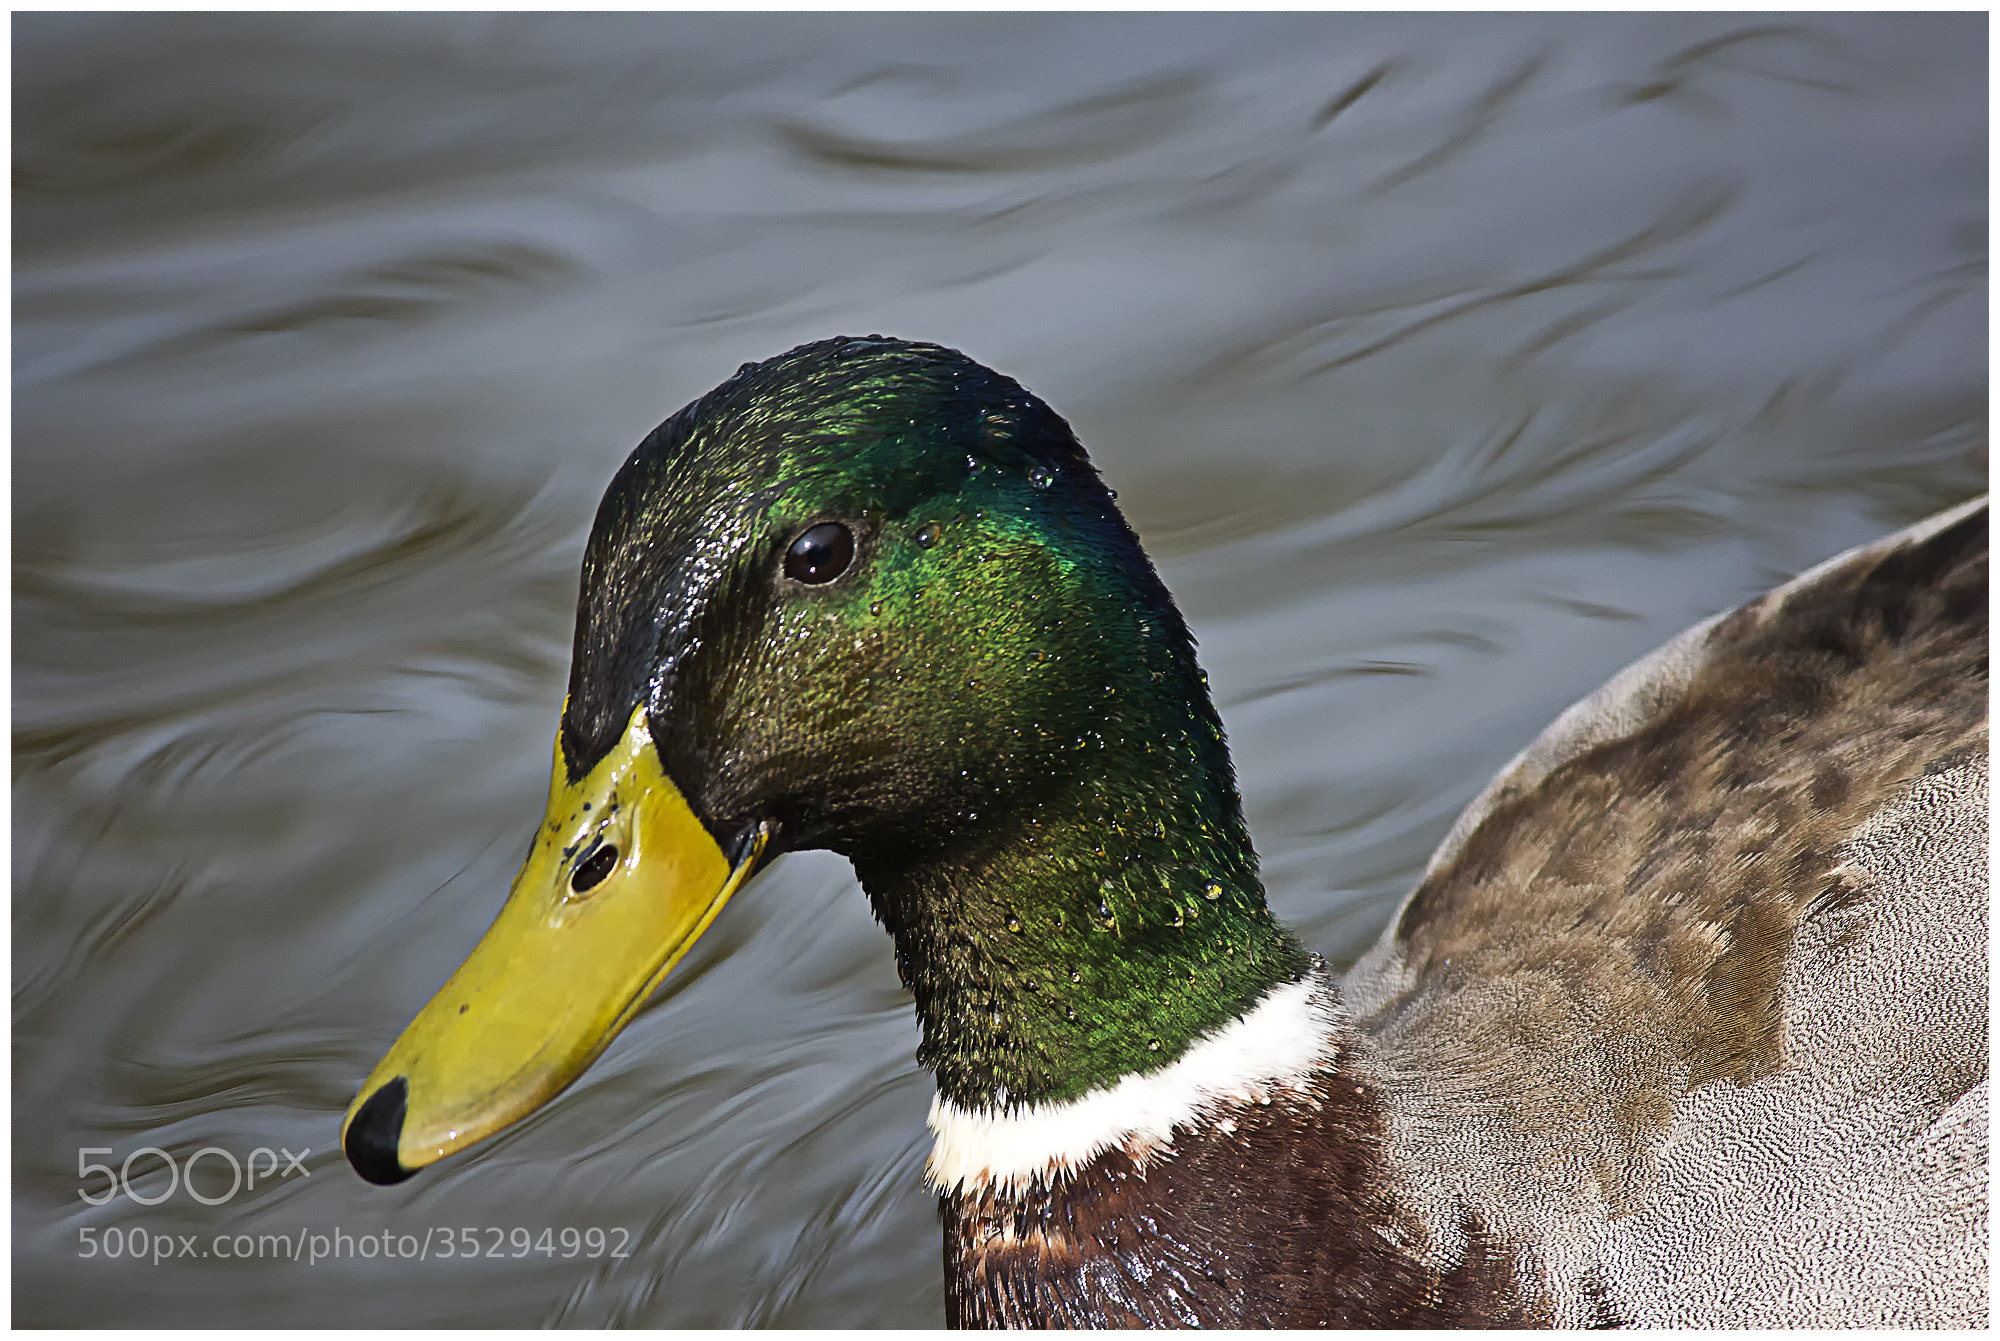 Photograph Le Canard by Richard Echasseriau on 500px